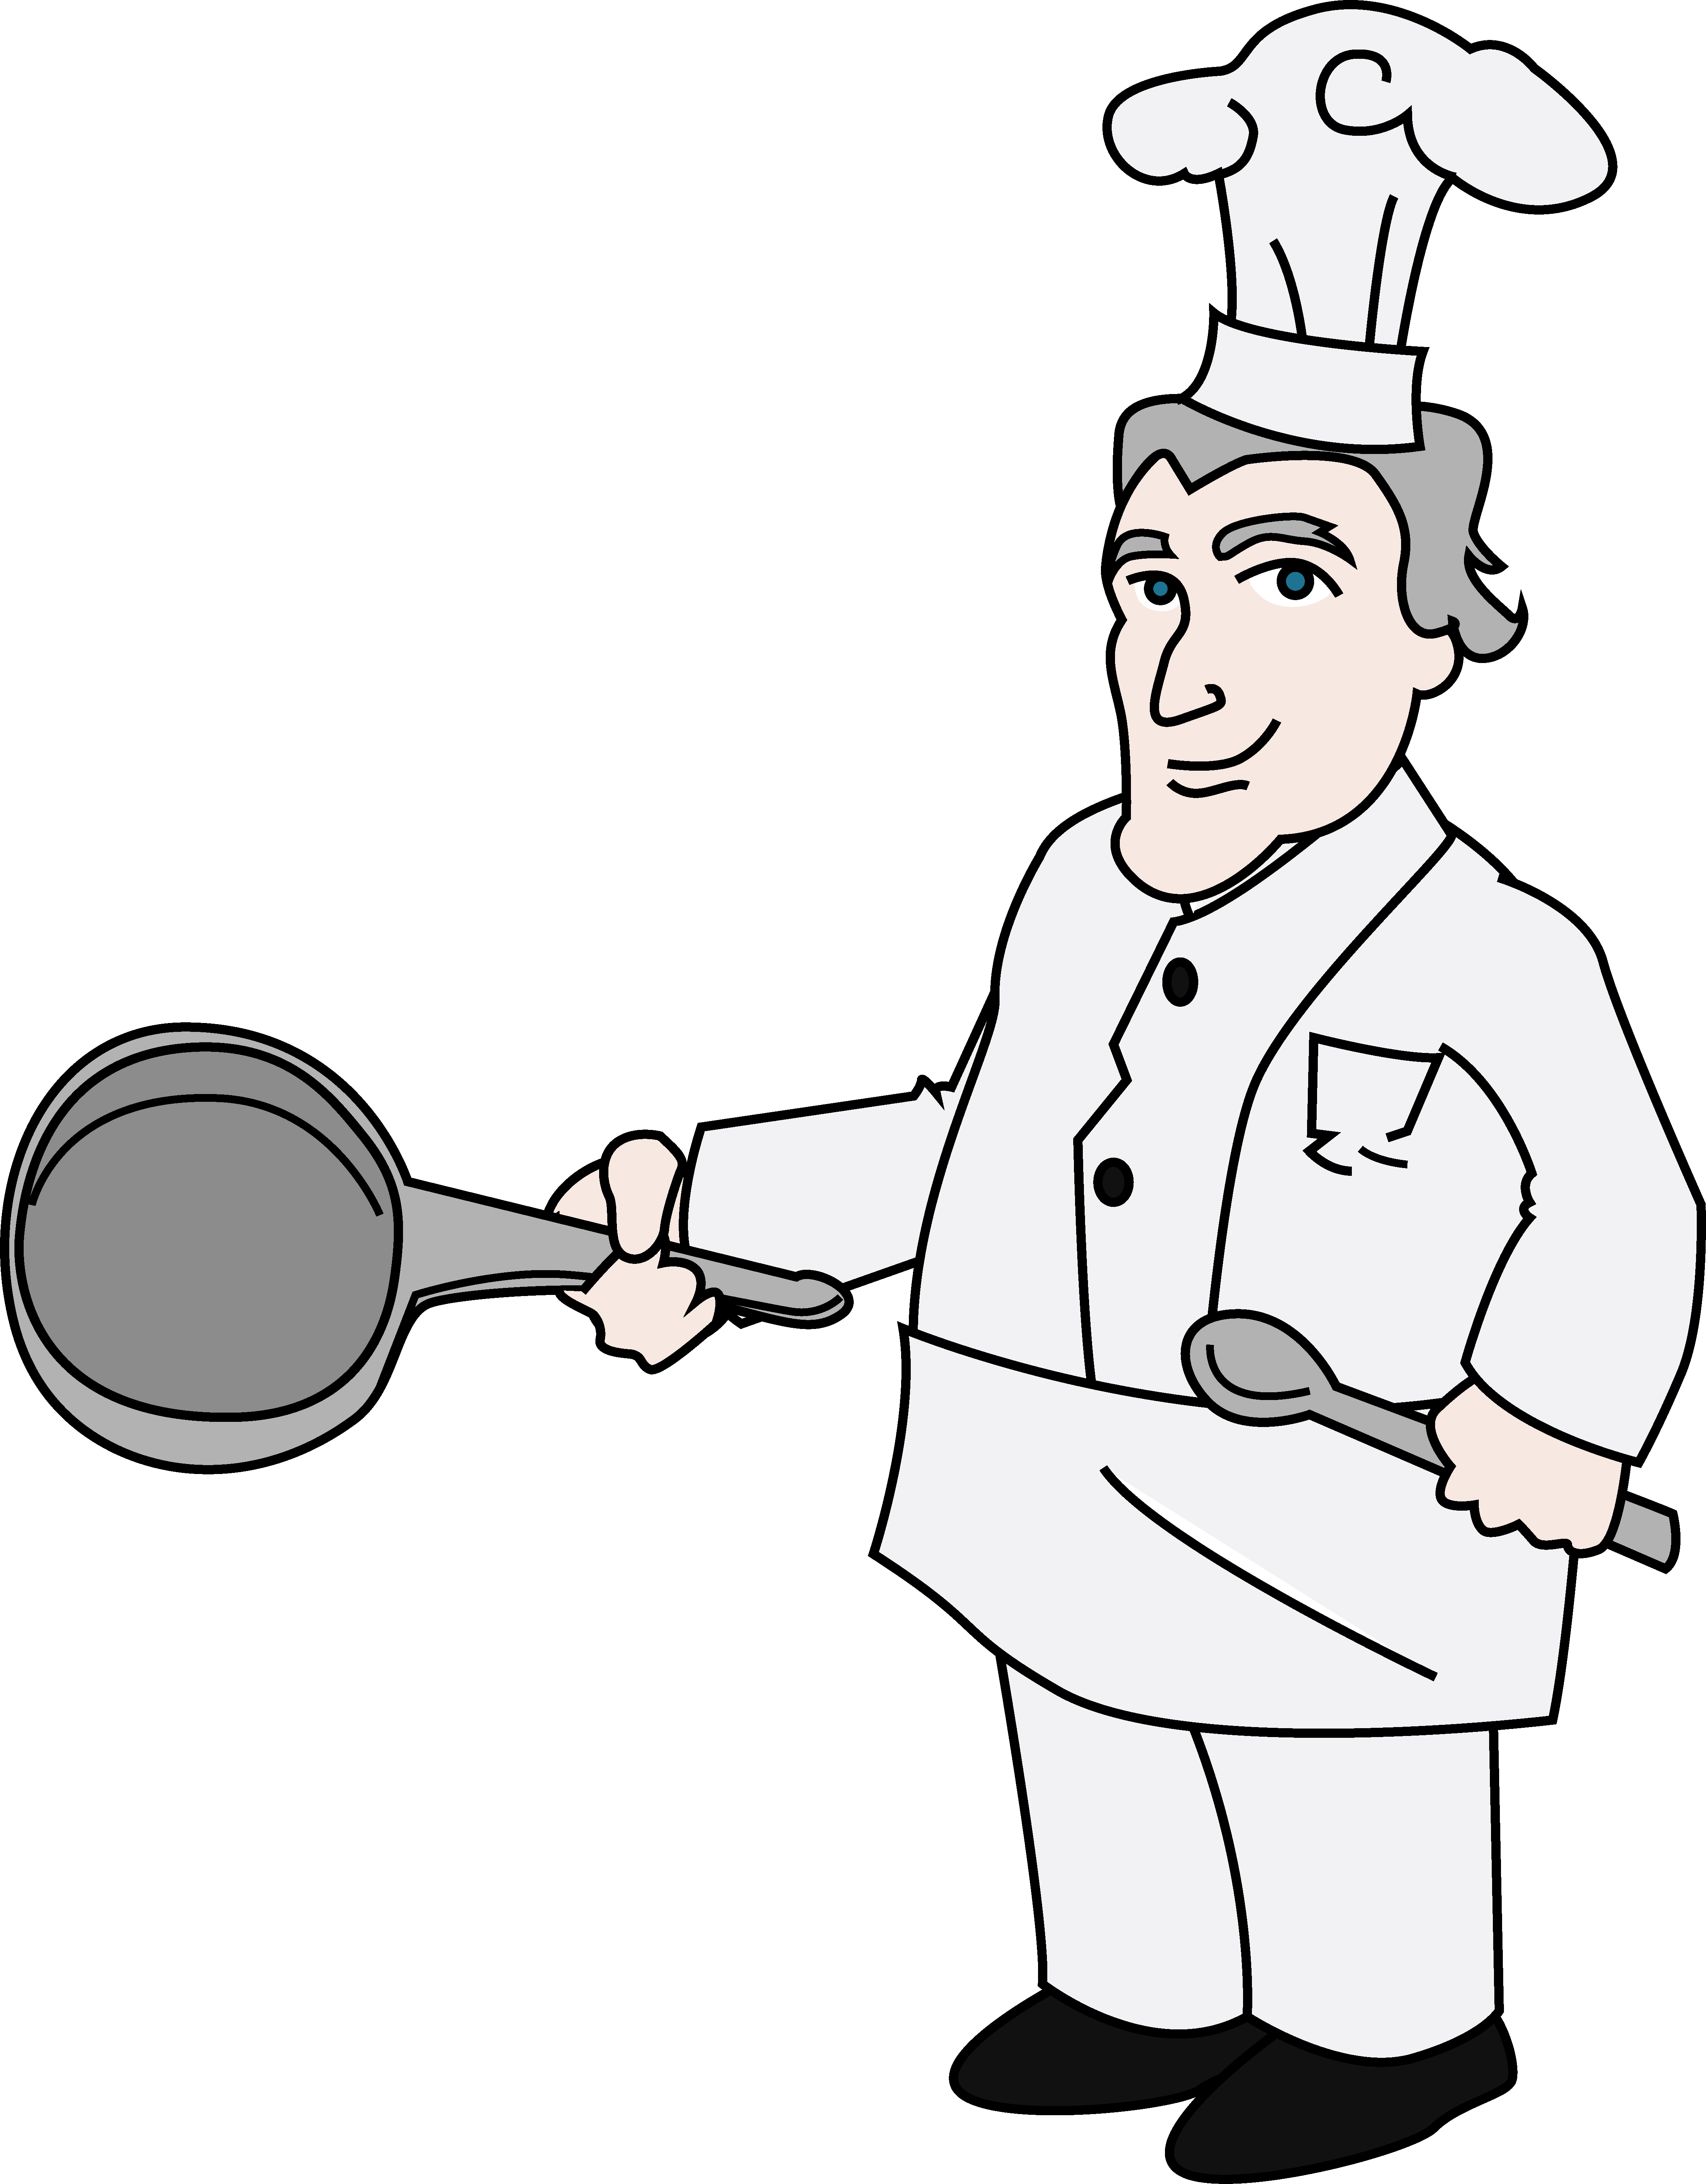 clip black and white download Chef illustration free clip. Chefs clipart occupation.